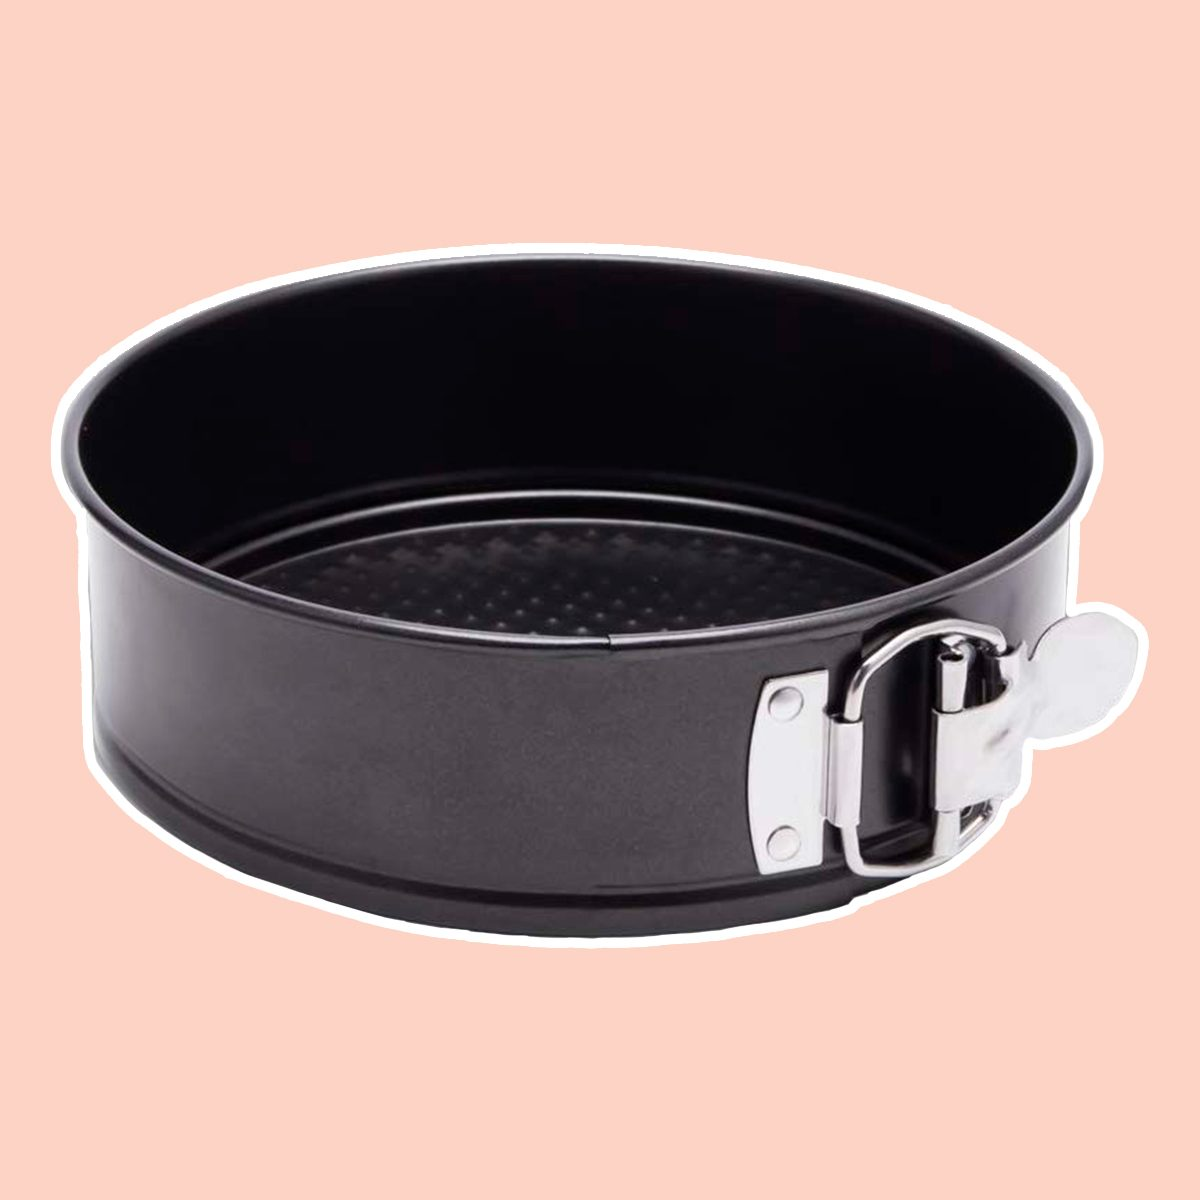 Hiware 9 Inch Non-stick Cheesecake Pan Springform Pan with Removable Bottom/Leakproof Cake Pan Bakeware with Cleaning Cloth